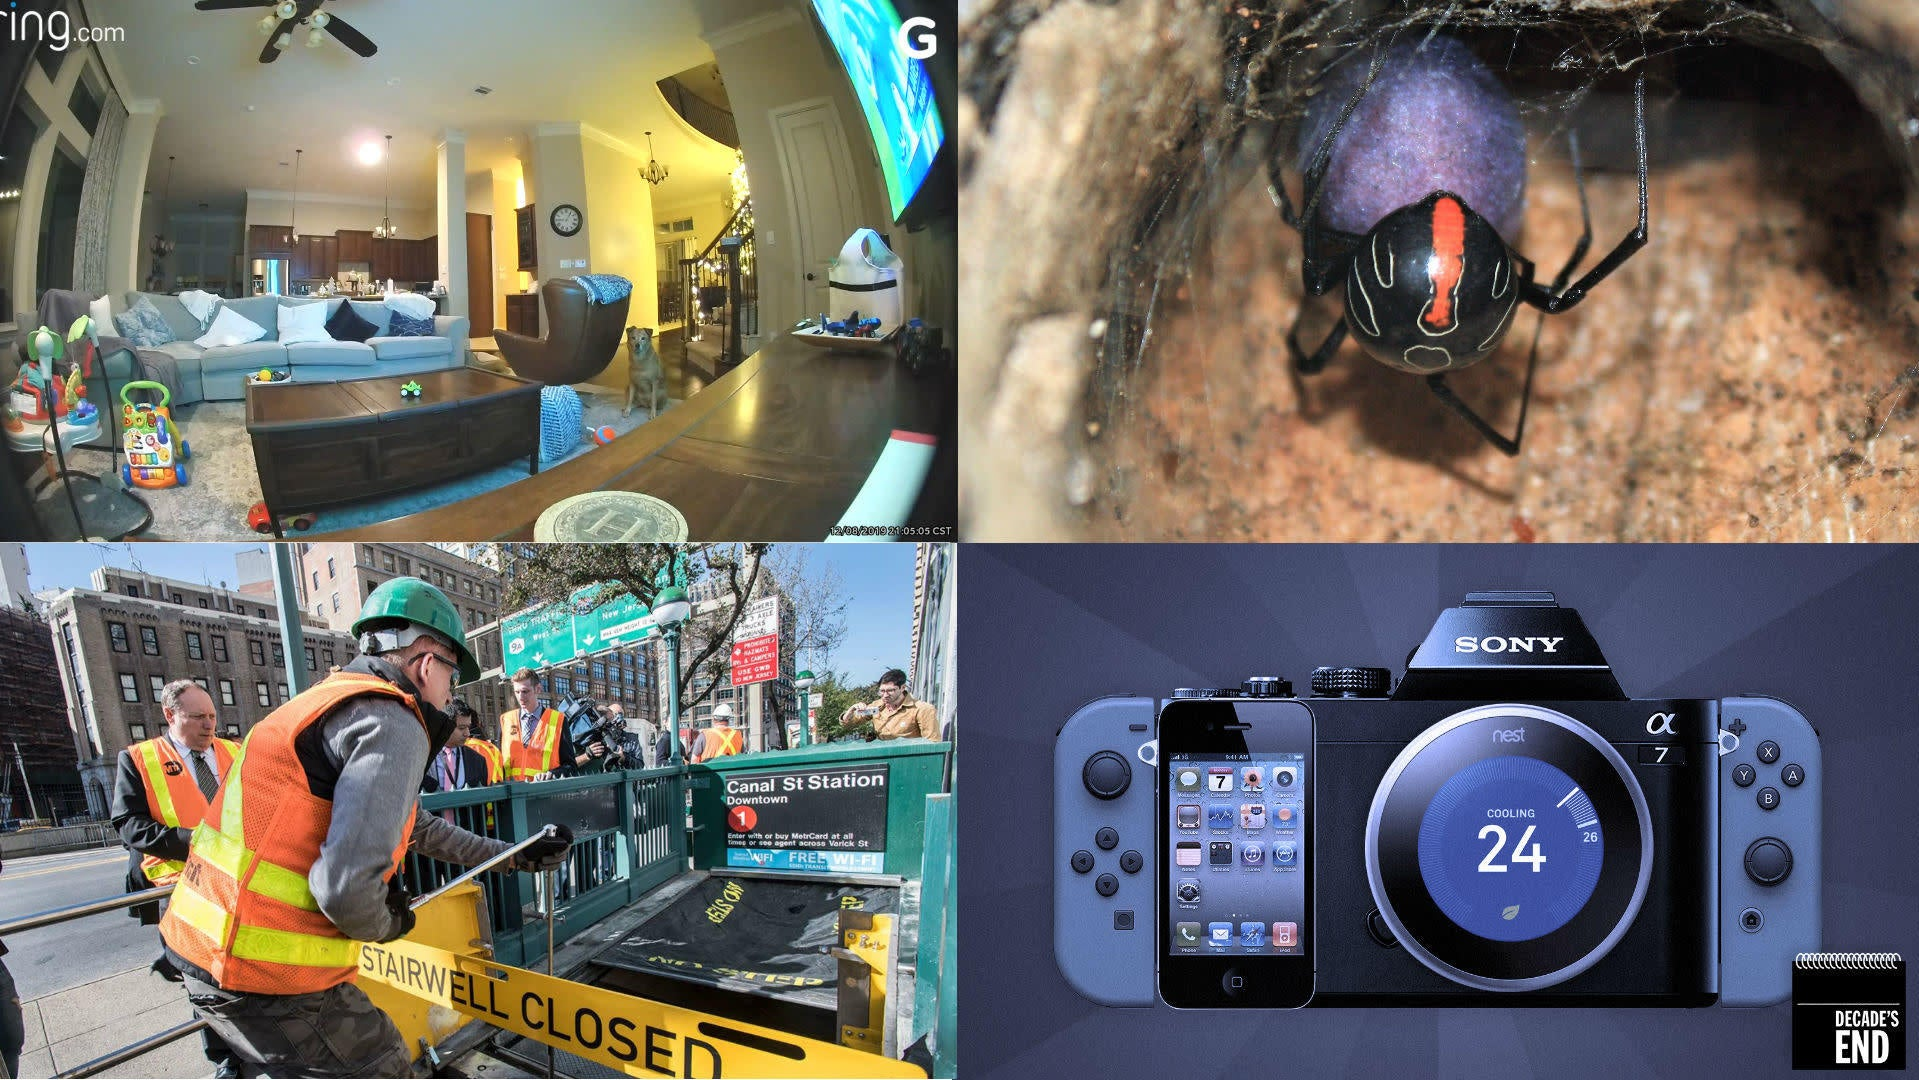 Ring Camera Hacks, Viral Fakes, And Decade Highlights: Best Gizmodo Stories Of The Week